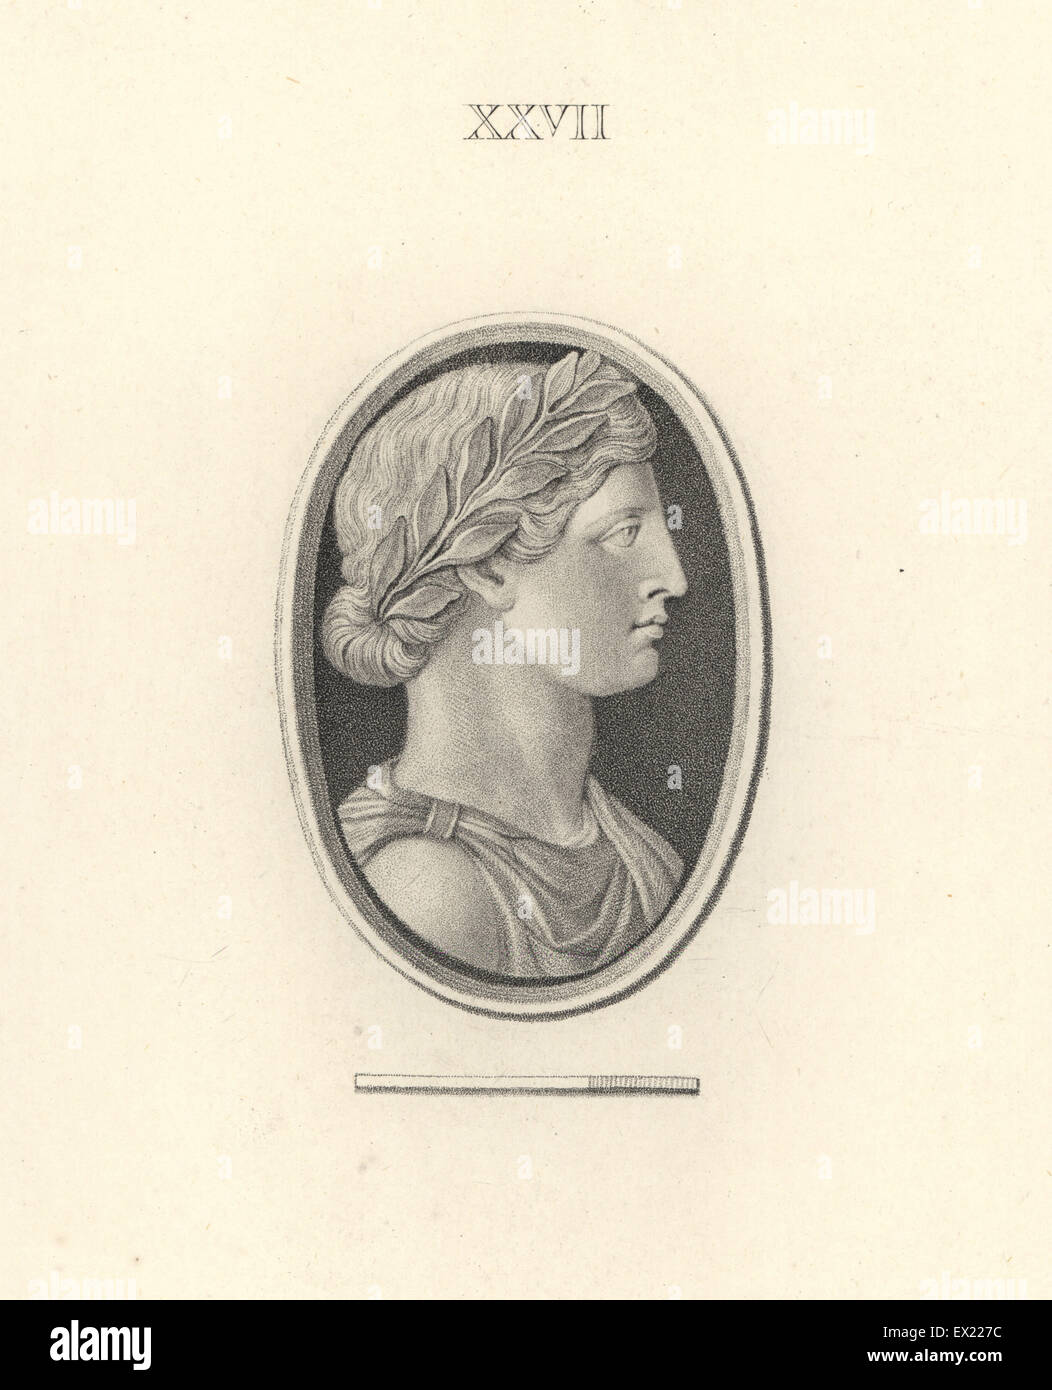 Antonia Minor or Agrippina Minor, Roman empress. Copperplate engraving by Francesco Bartolozzi from 108 Plates of - Stock Image